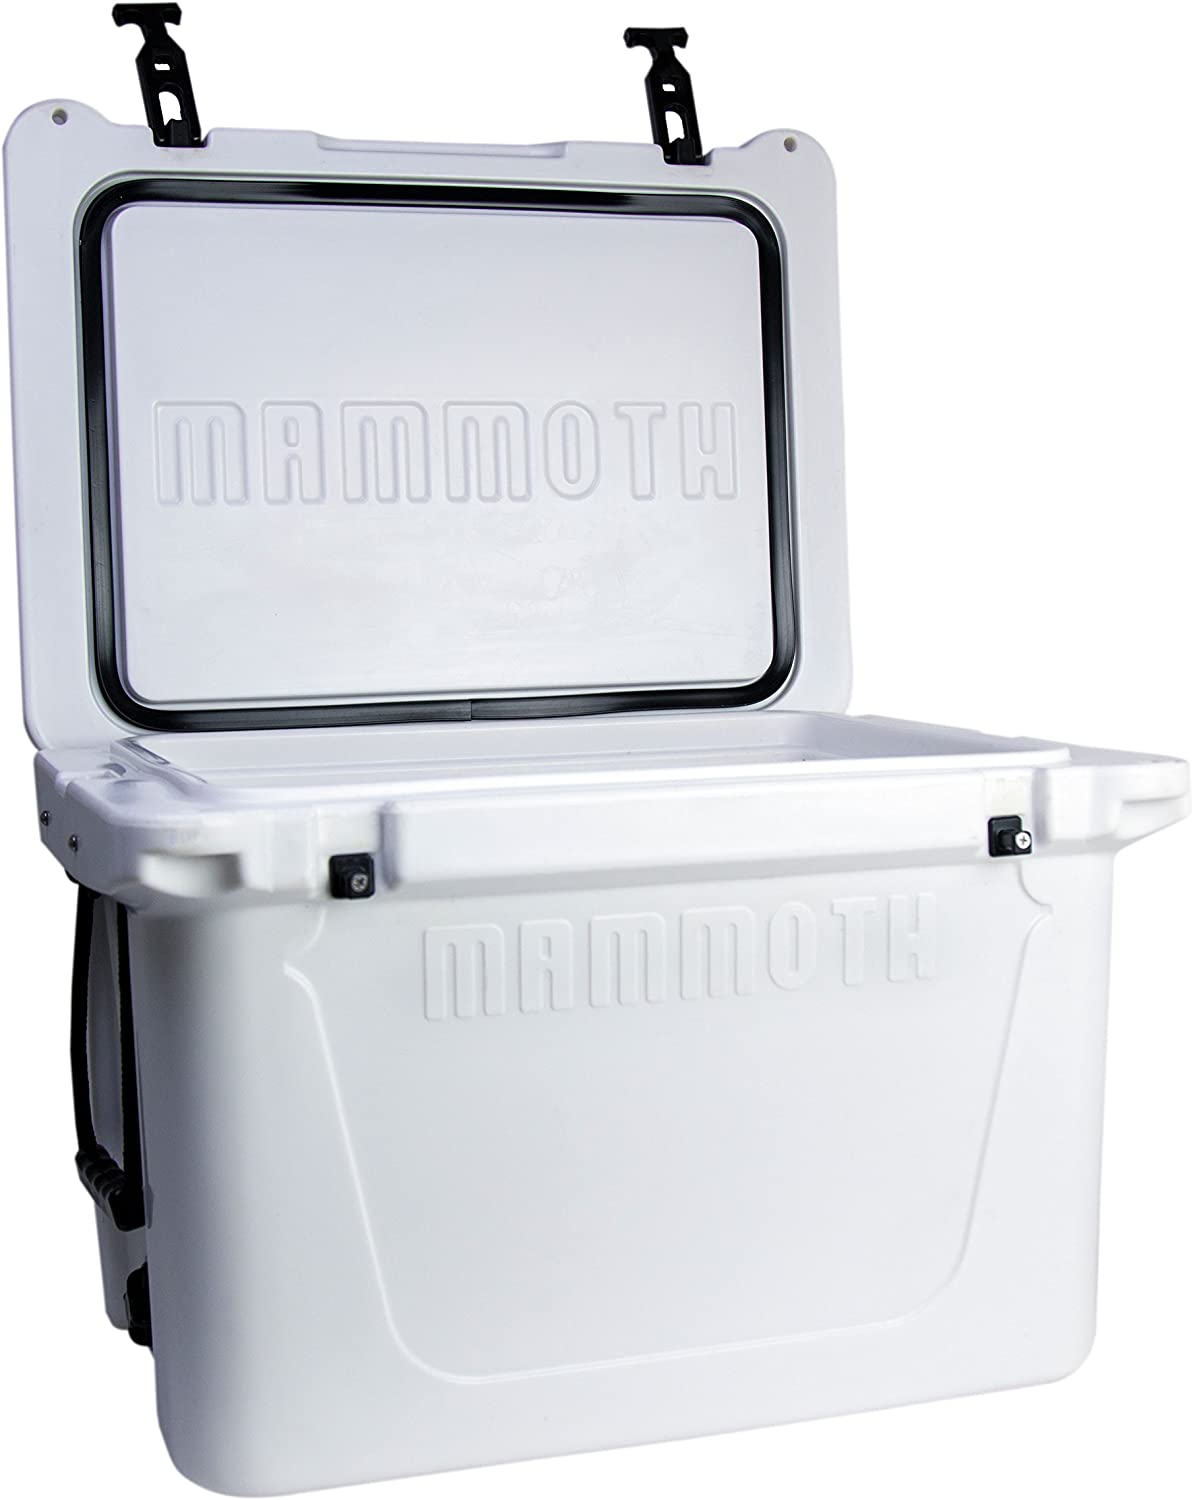 Mammoth Coolers Ranger MR45W Cooler, White